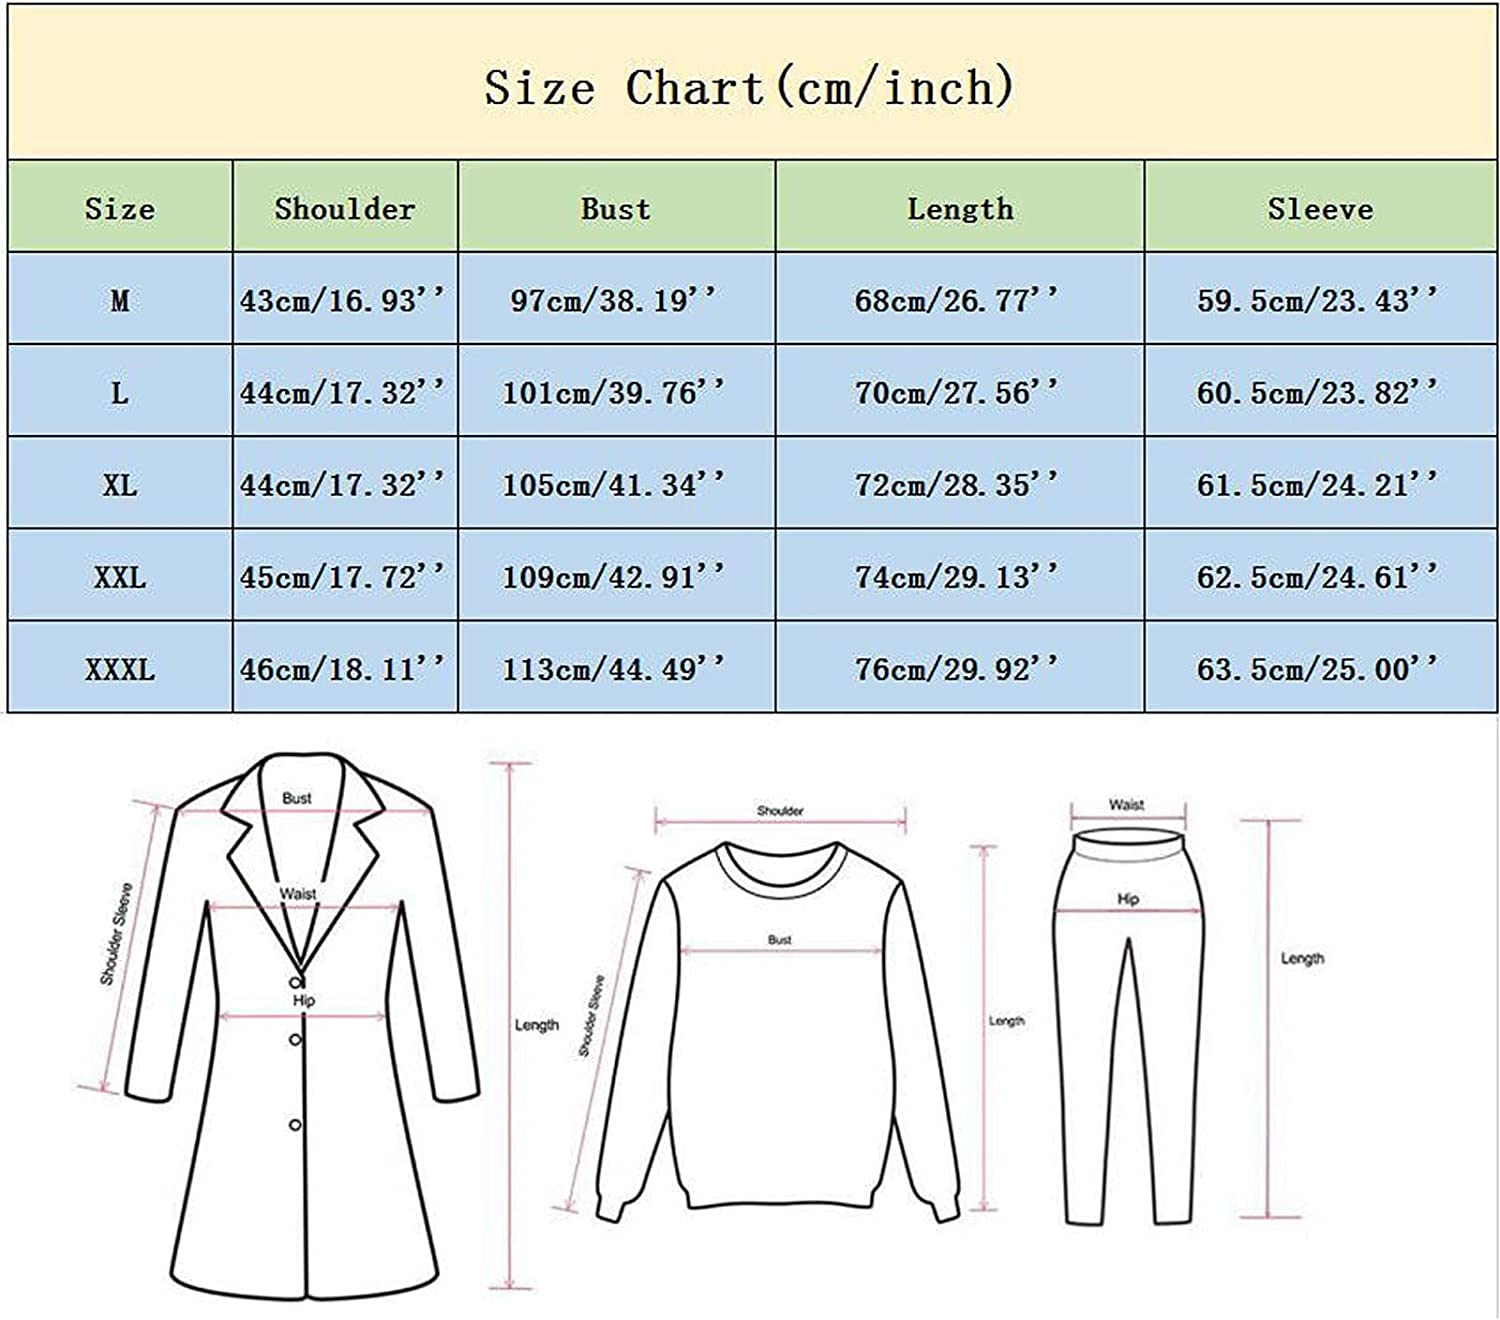 XXBR Knit Shirts for Mens, Front Placket Button Lapel Collar Polo Shirt Long Sleeve Business Casual Fall Wool Tops